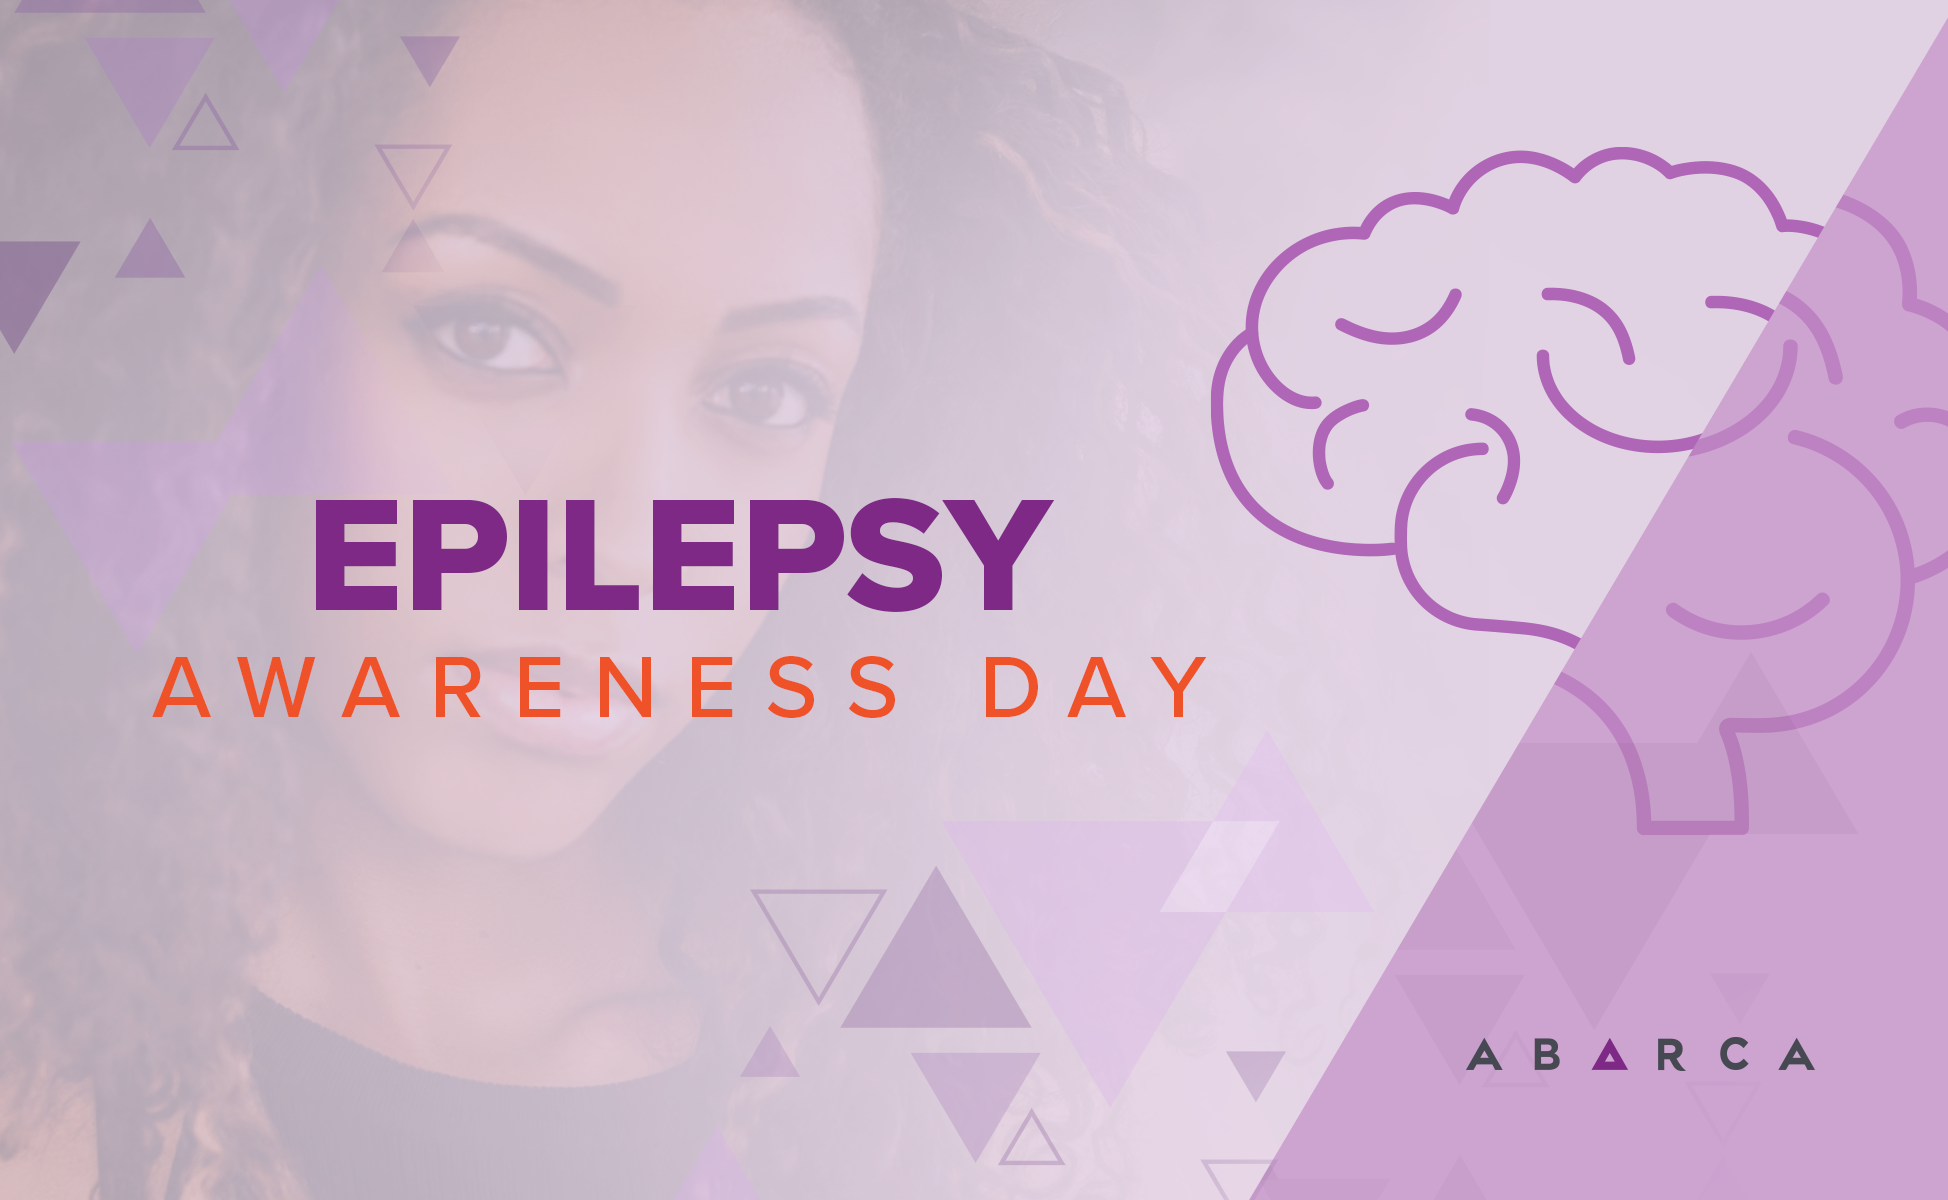 Epilepsy Awareness Day: Abarca is Shining a Spotlight on This Misunderstood Condition